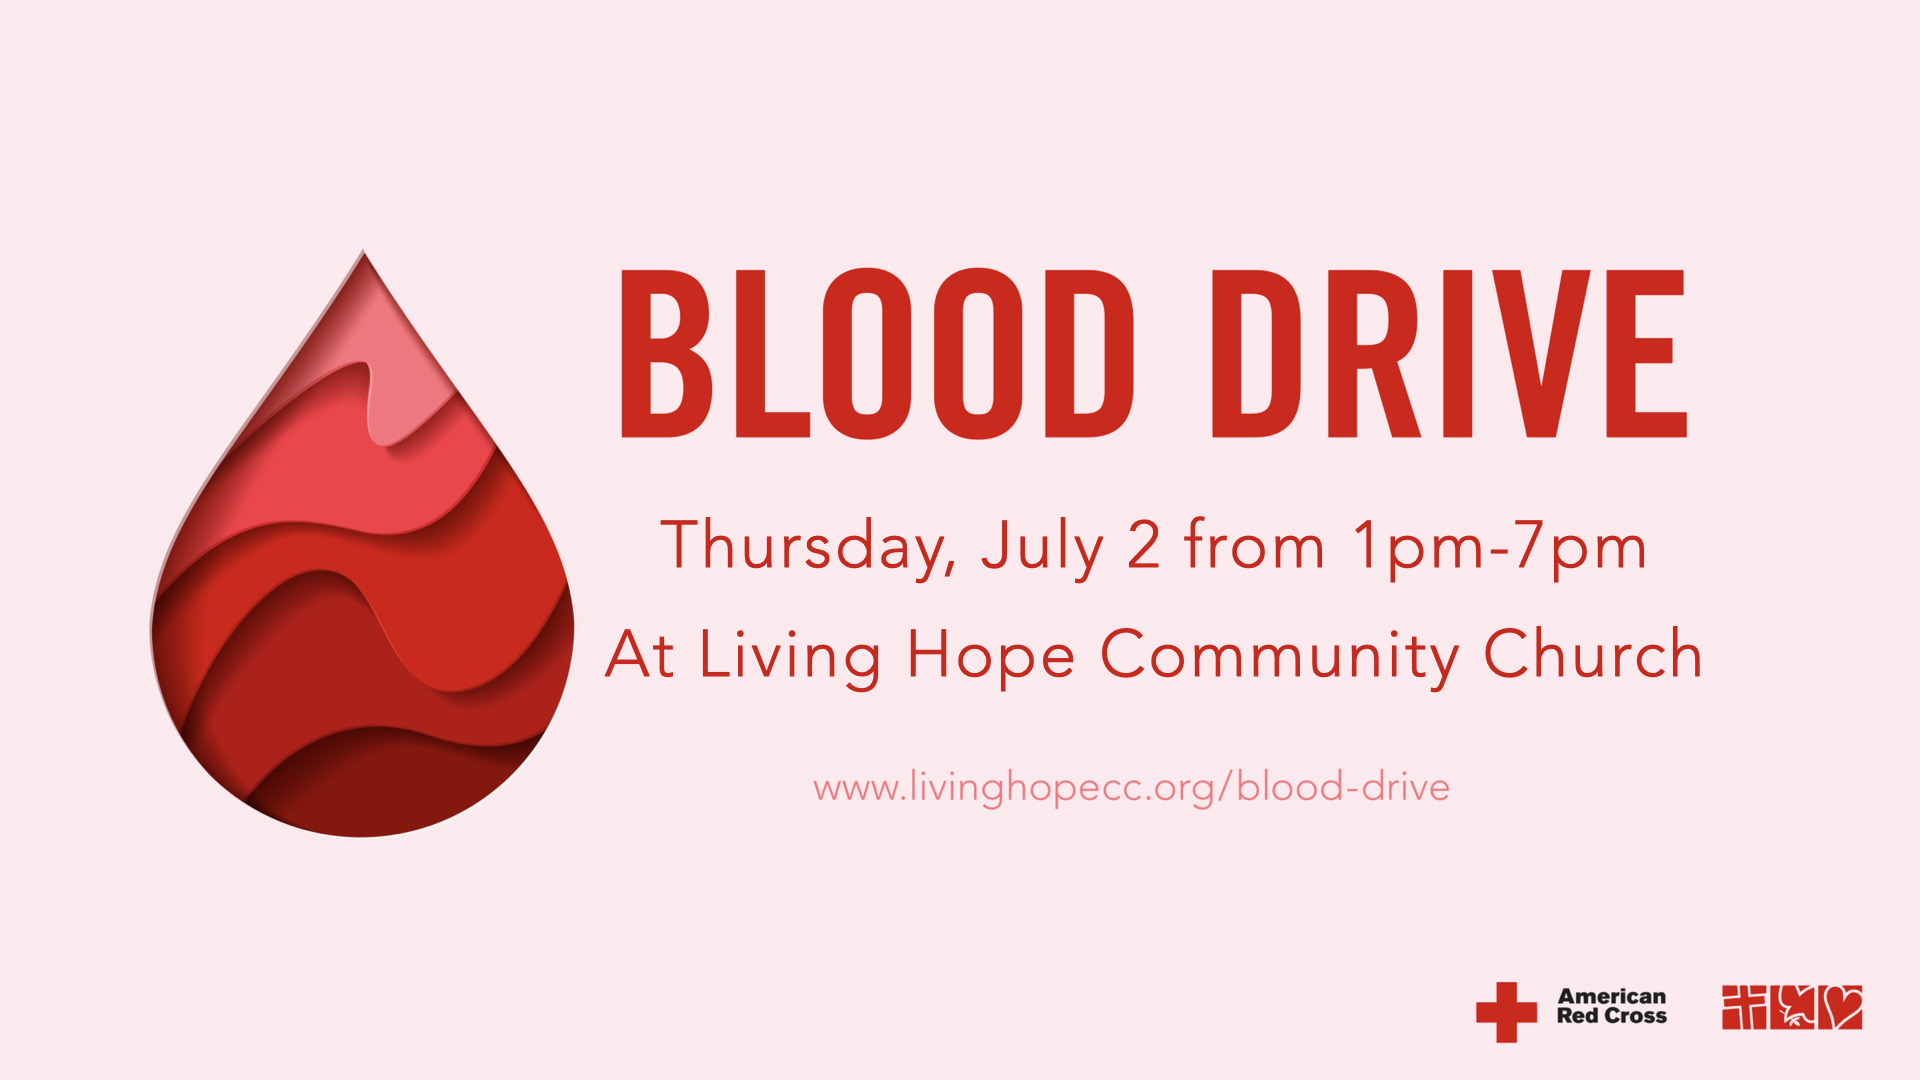 Blood Drive 2020.07.02.001 image